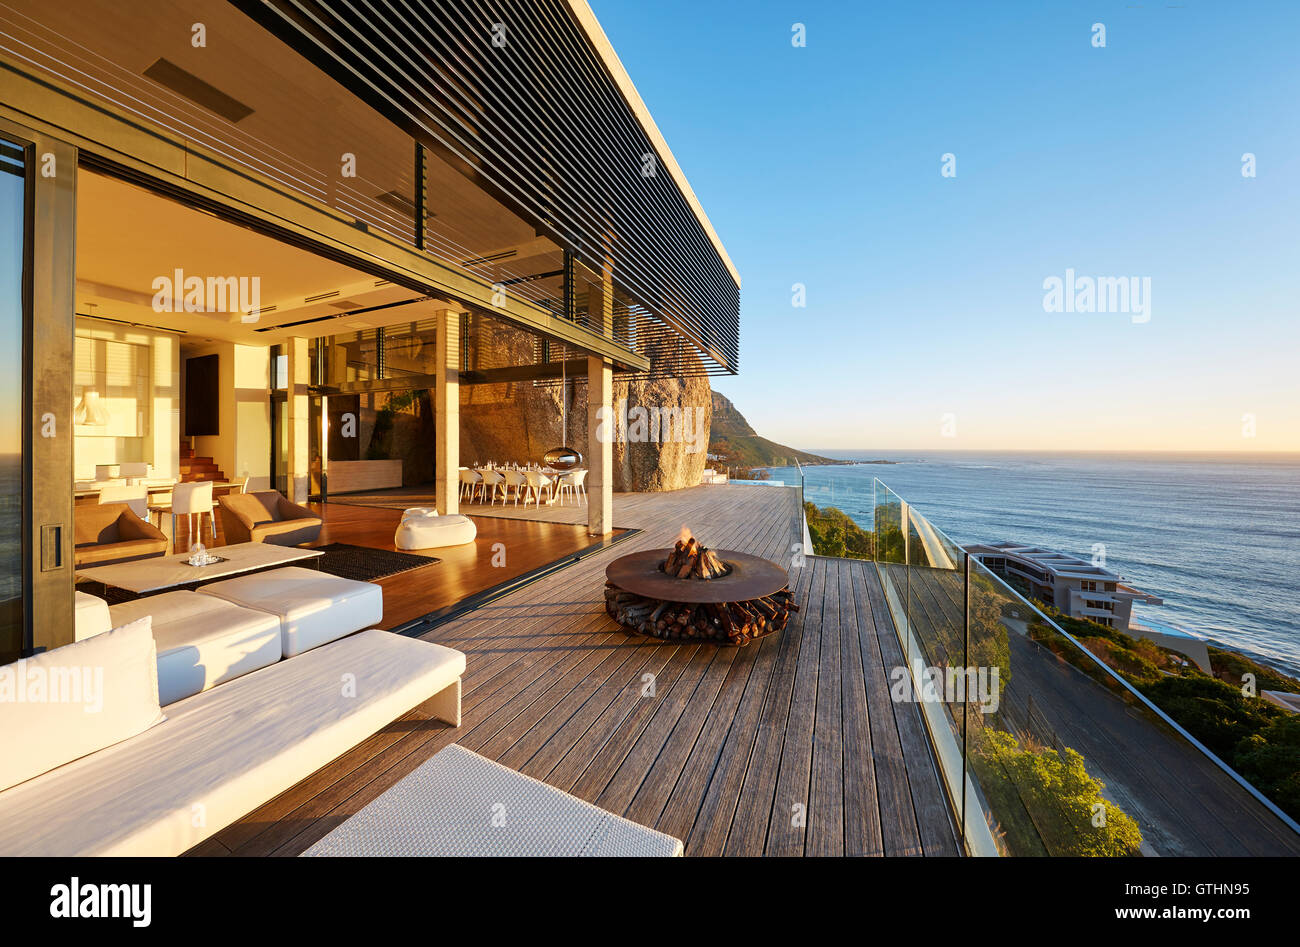 Modern Luxury Patio With Fire Pit And Ocean View